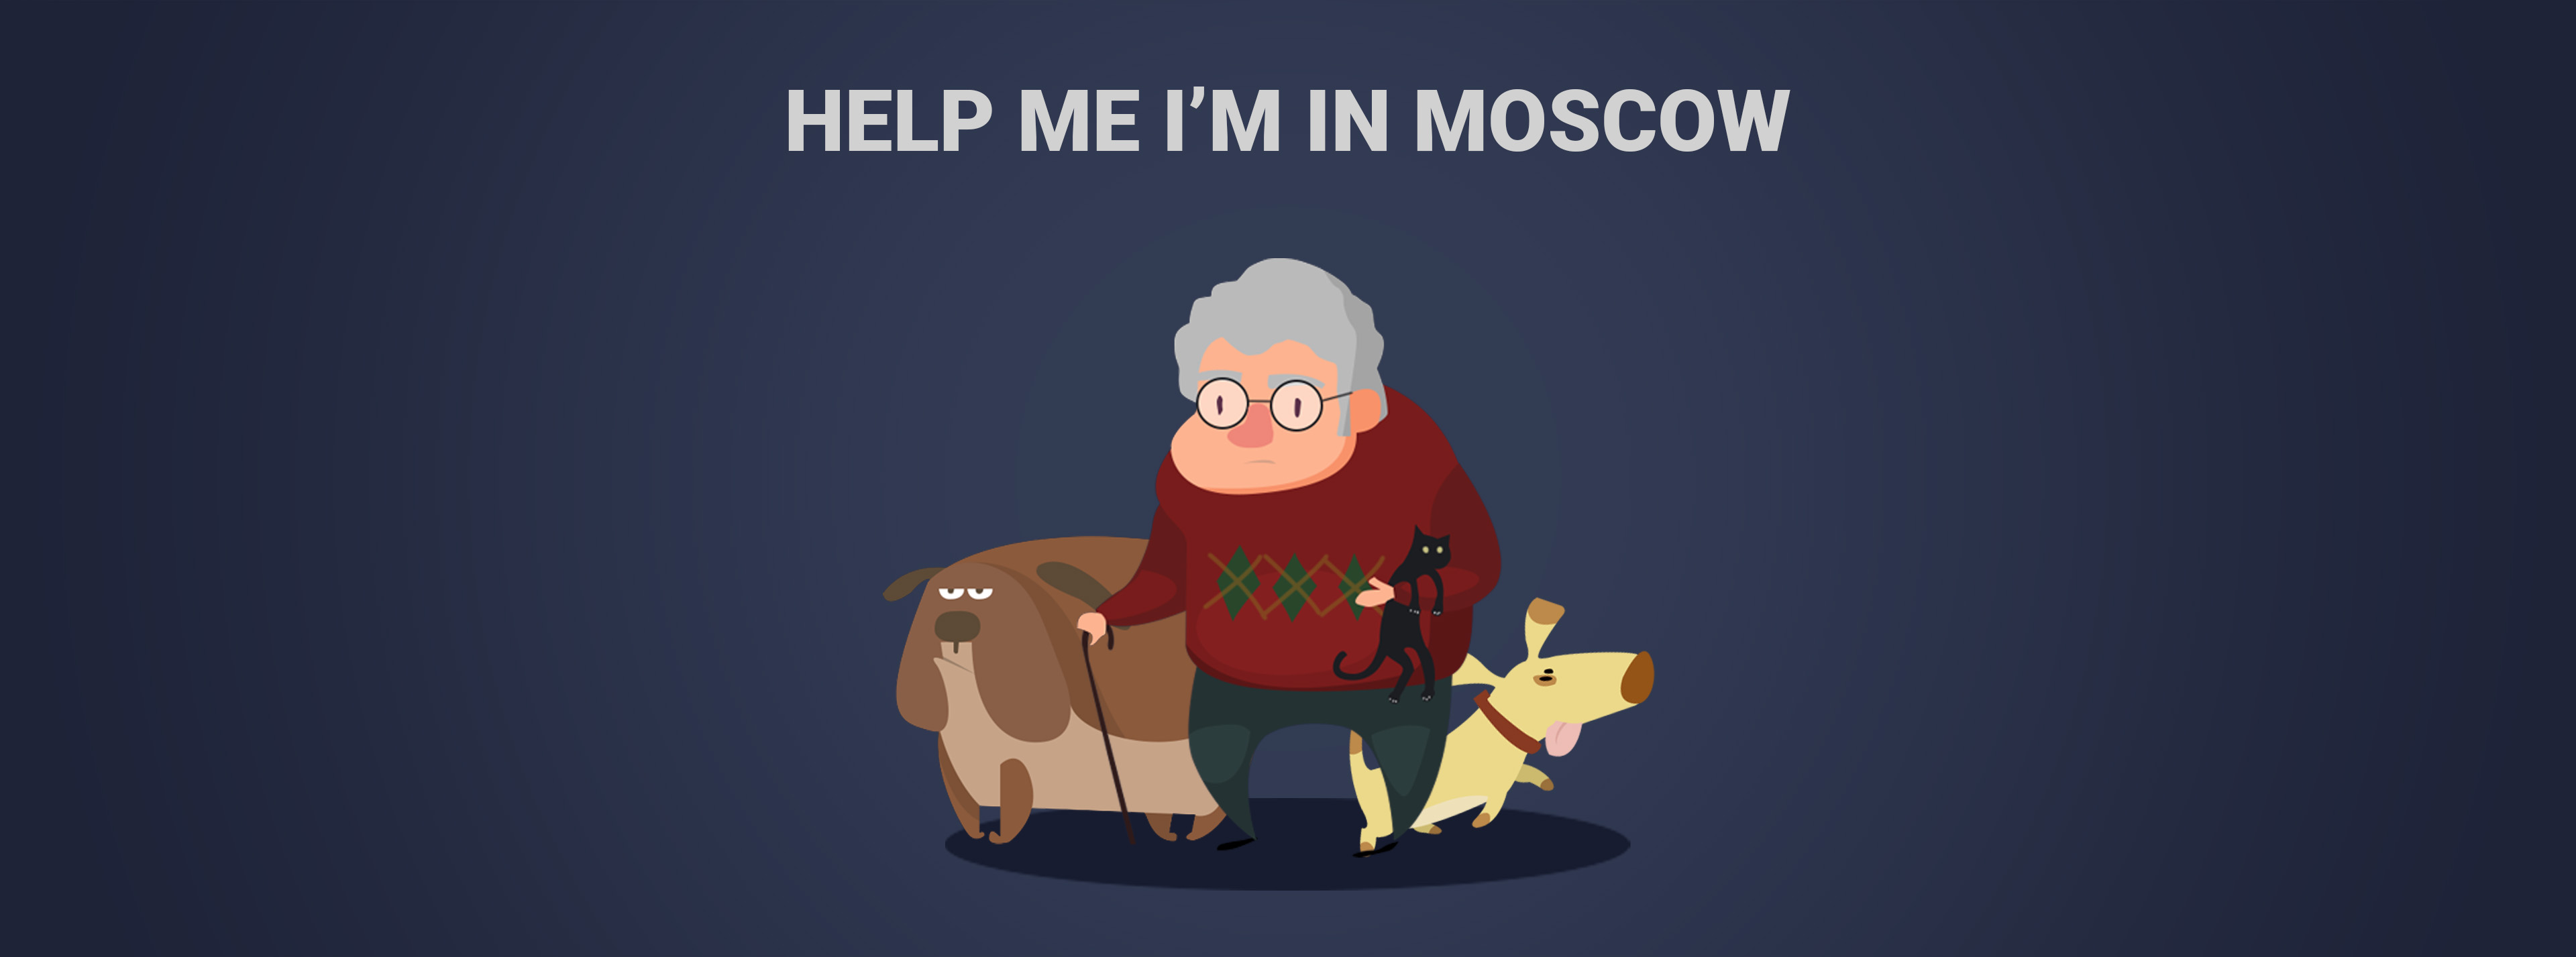 Help Me I'm In Moscow